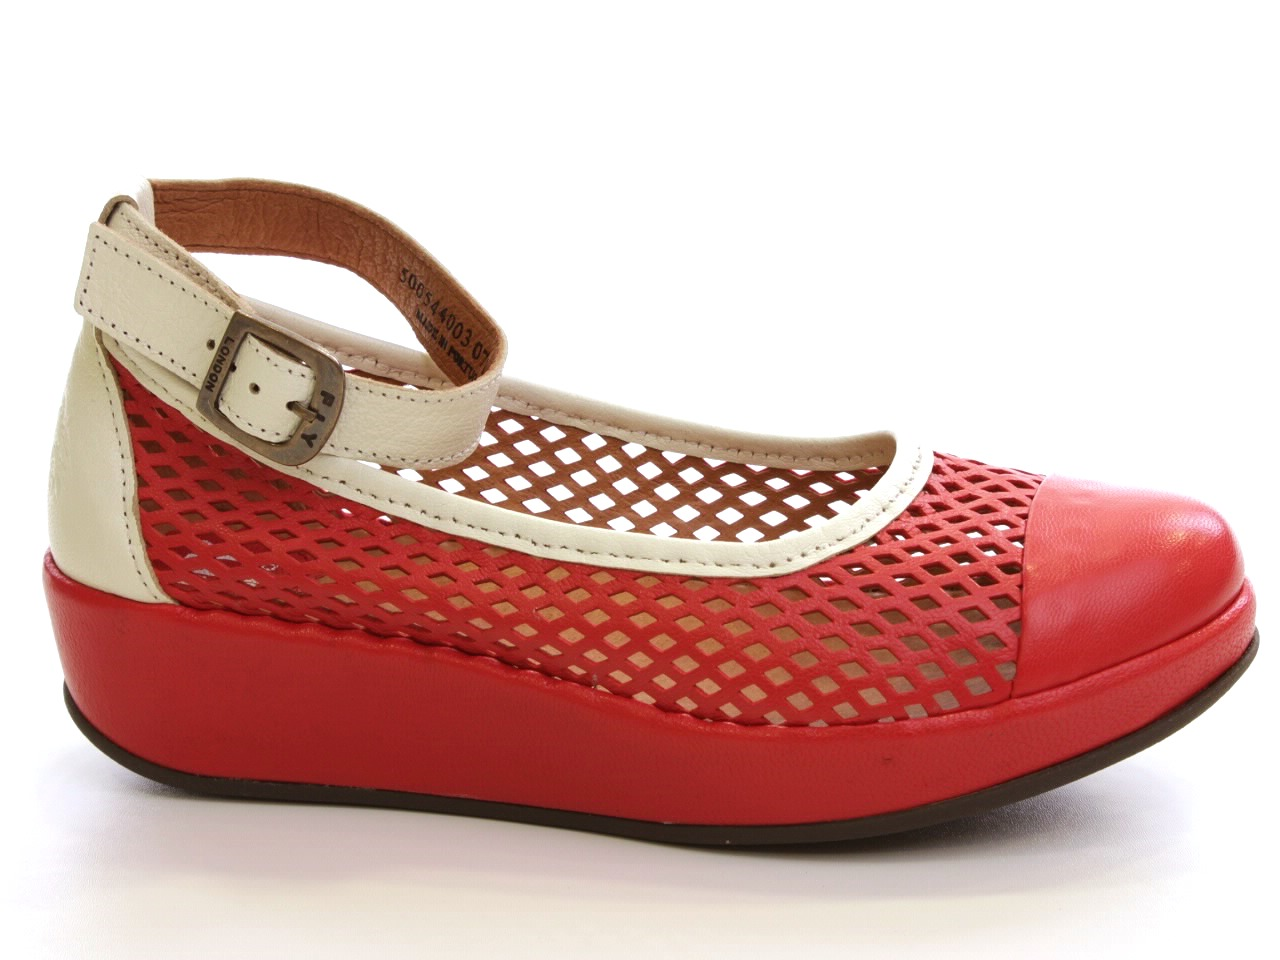 Wedge Shoes Fly London - 339 BIDI